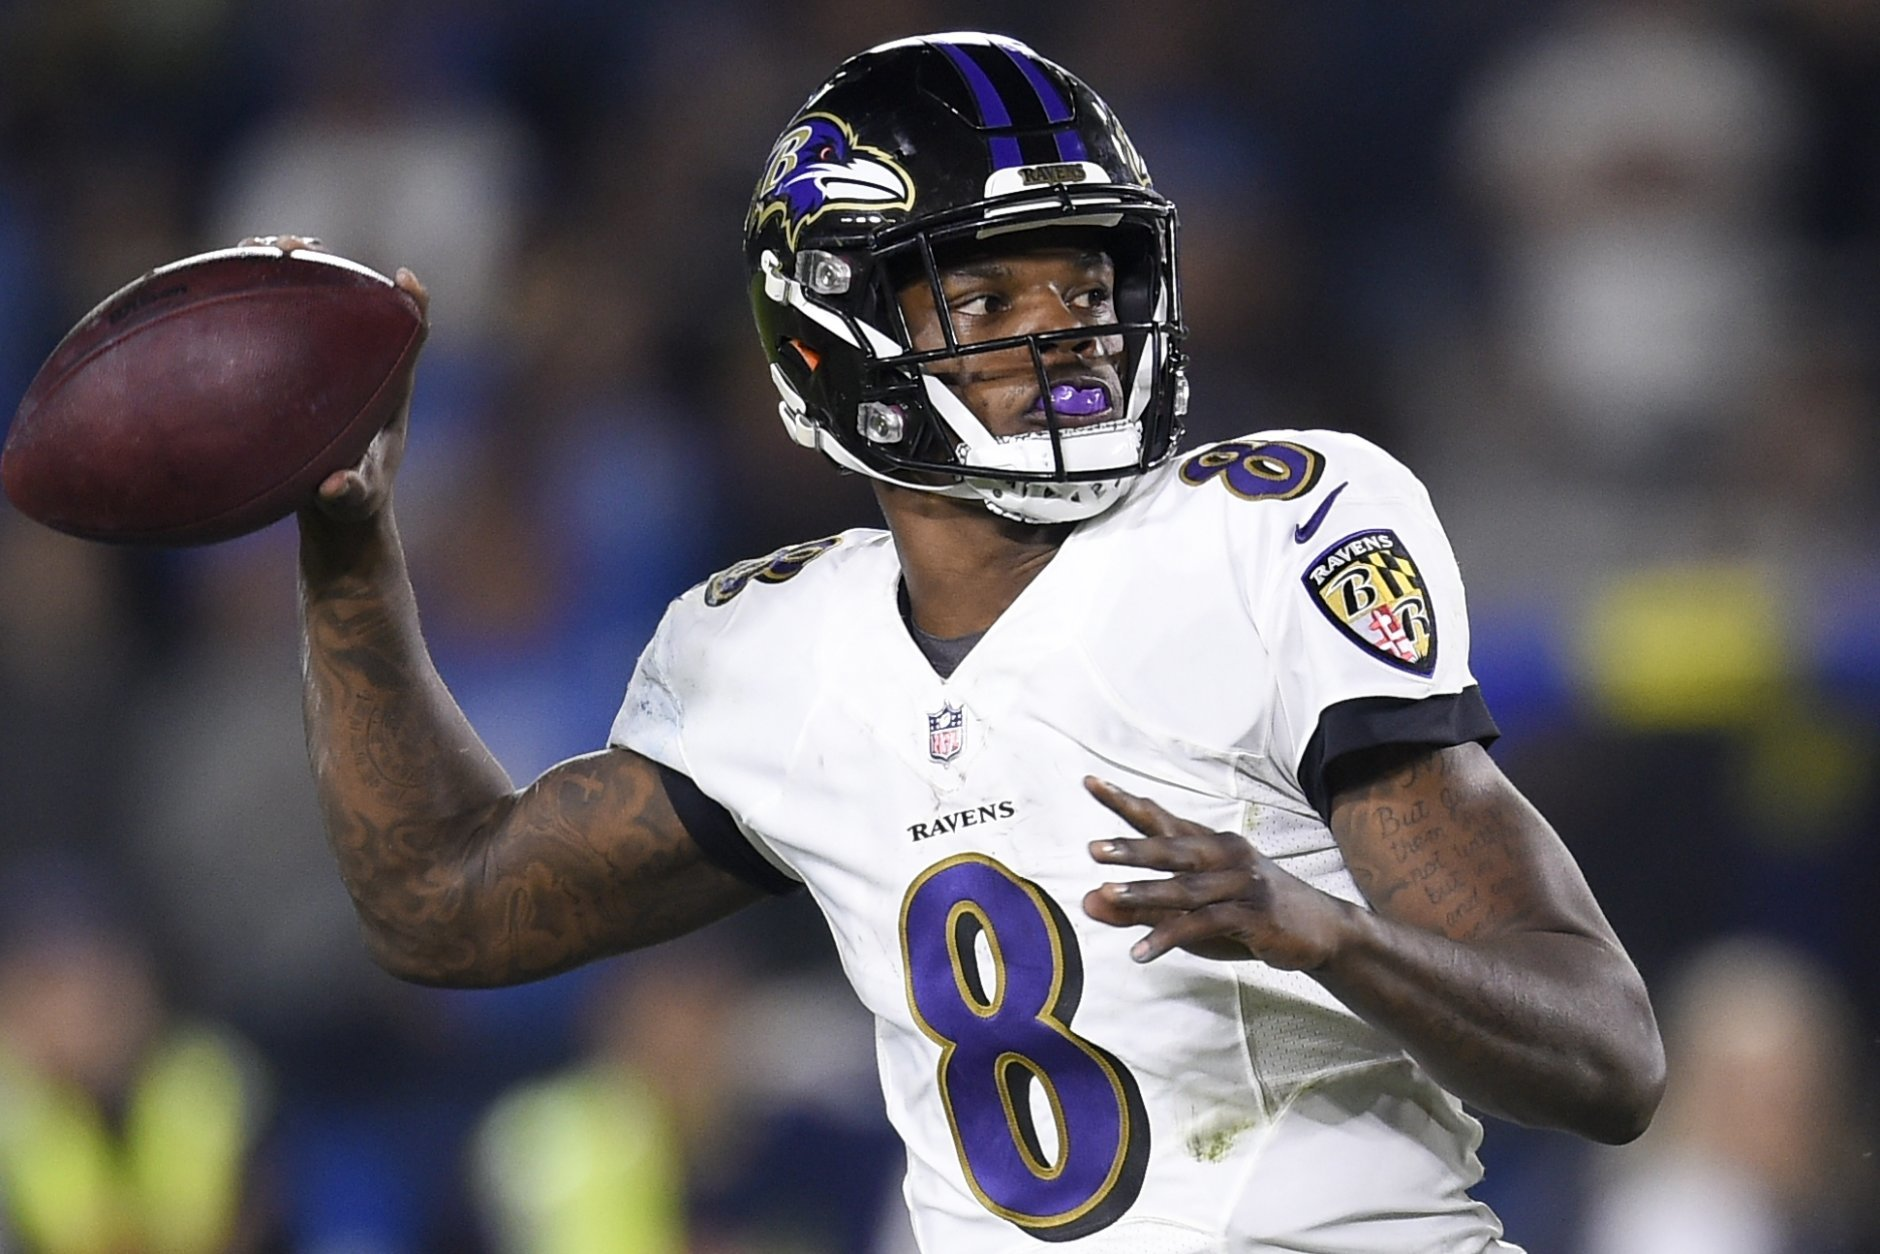 Baltimore Ravens quarterback Lamar Jackson passes against the Los Angeles Chargers during the first half in an NFL football game Saturday, Dec. 22, 2018, in Carson, Calif. (AP Photo/Kelvin Kuo)